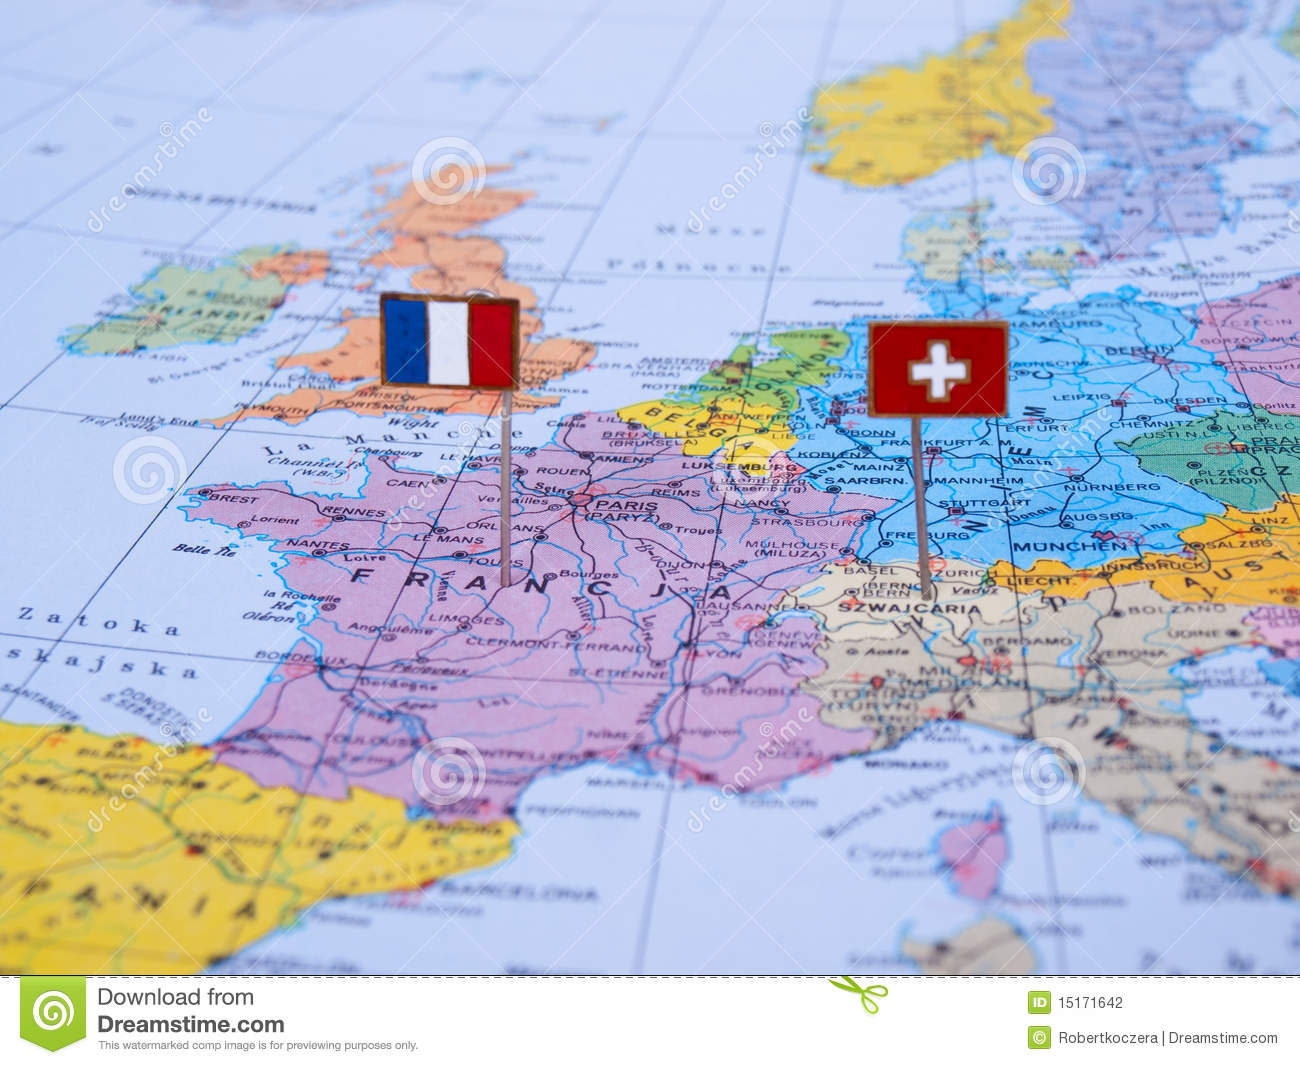 Map Of France Switzerland.France And Switzerland On The Map Stock Photo Image Of